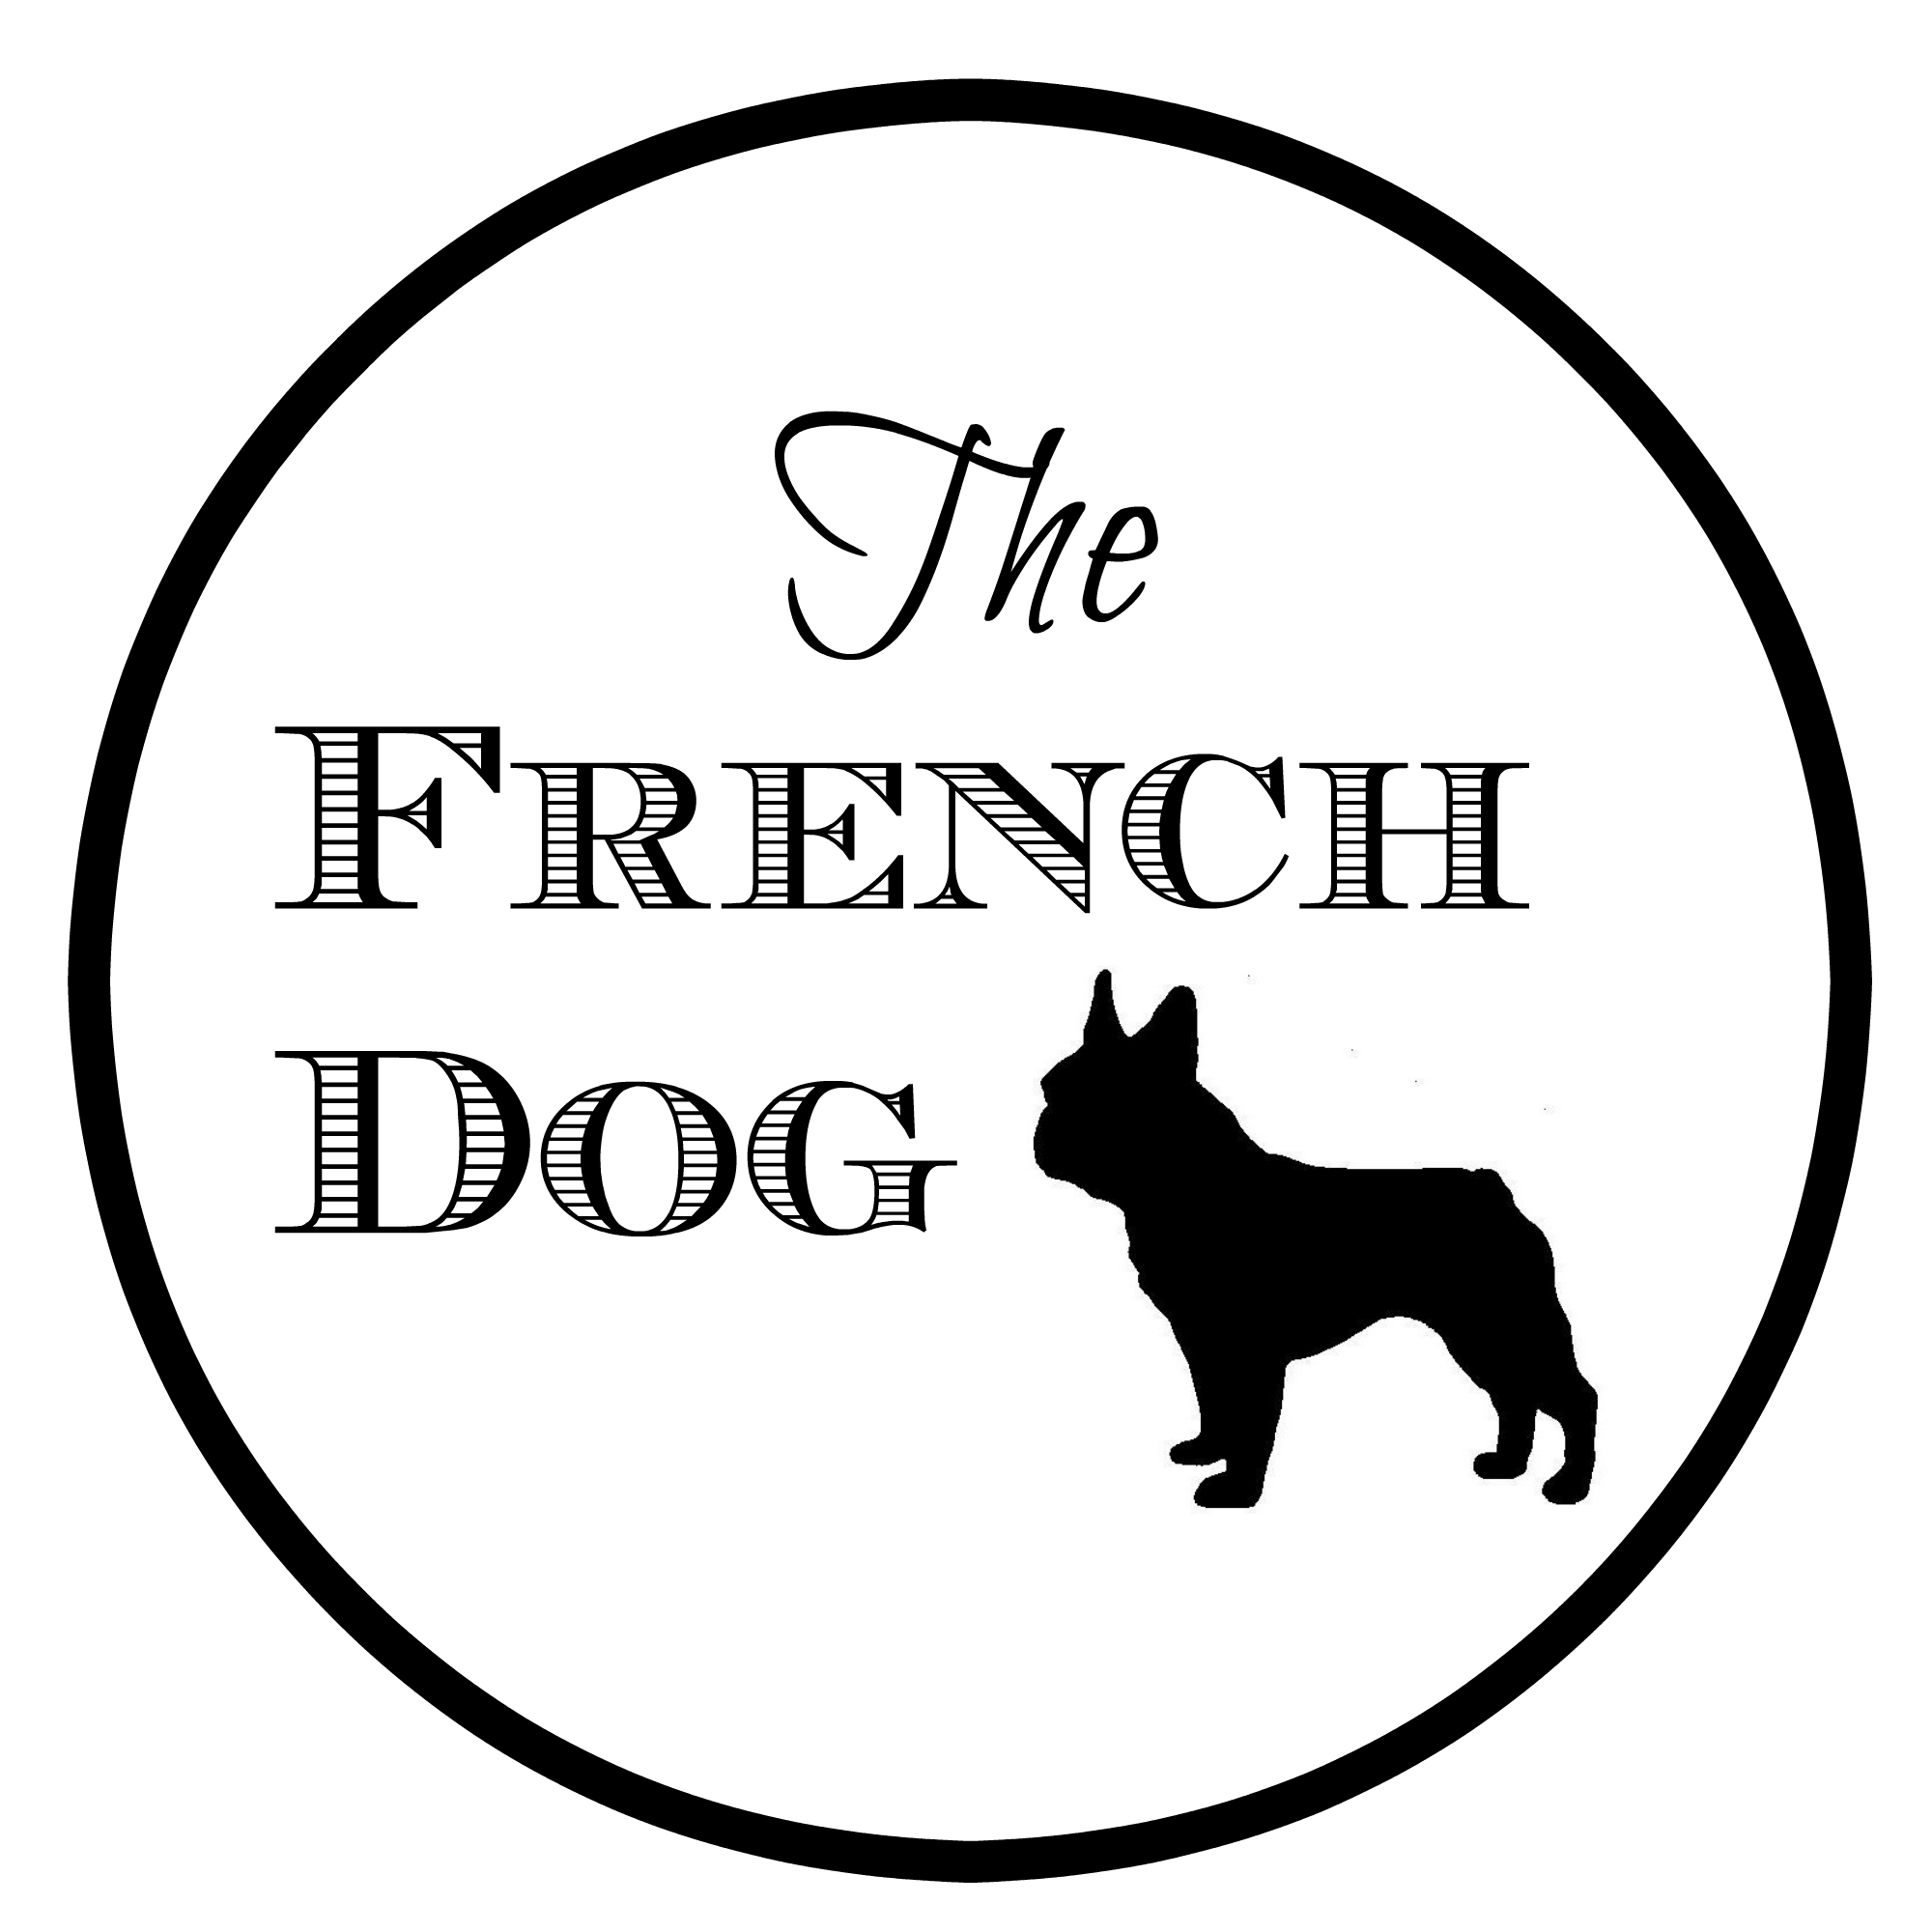 Drawing accessory dog. The french croppedfrenchdoglogopng